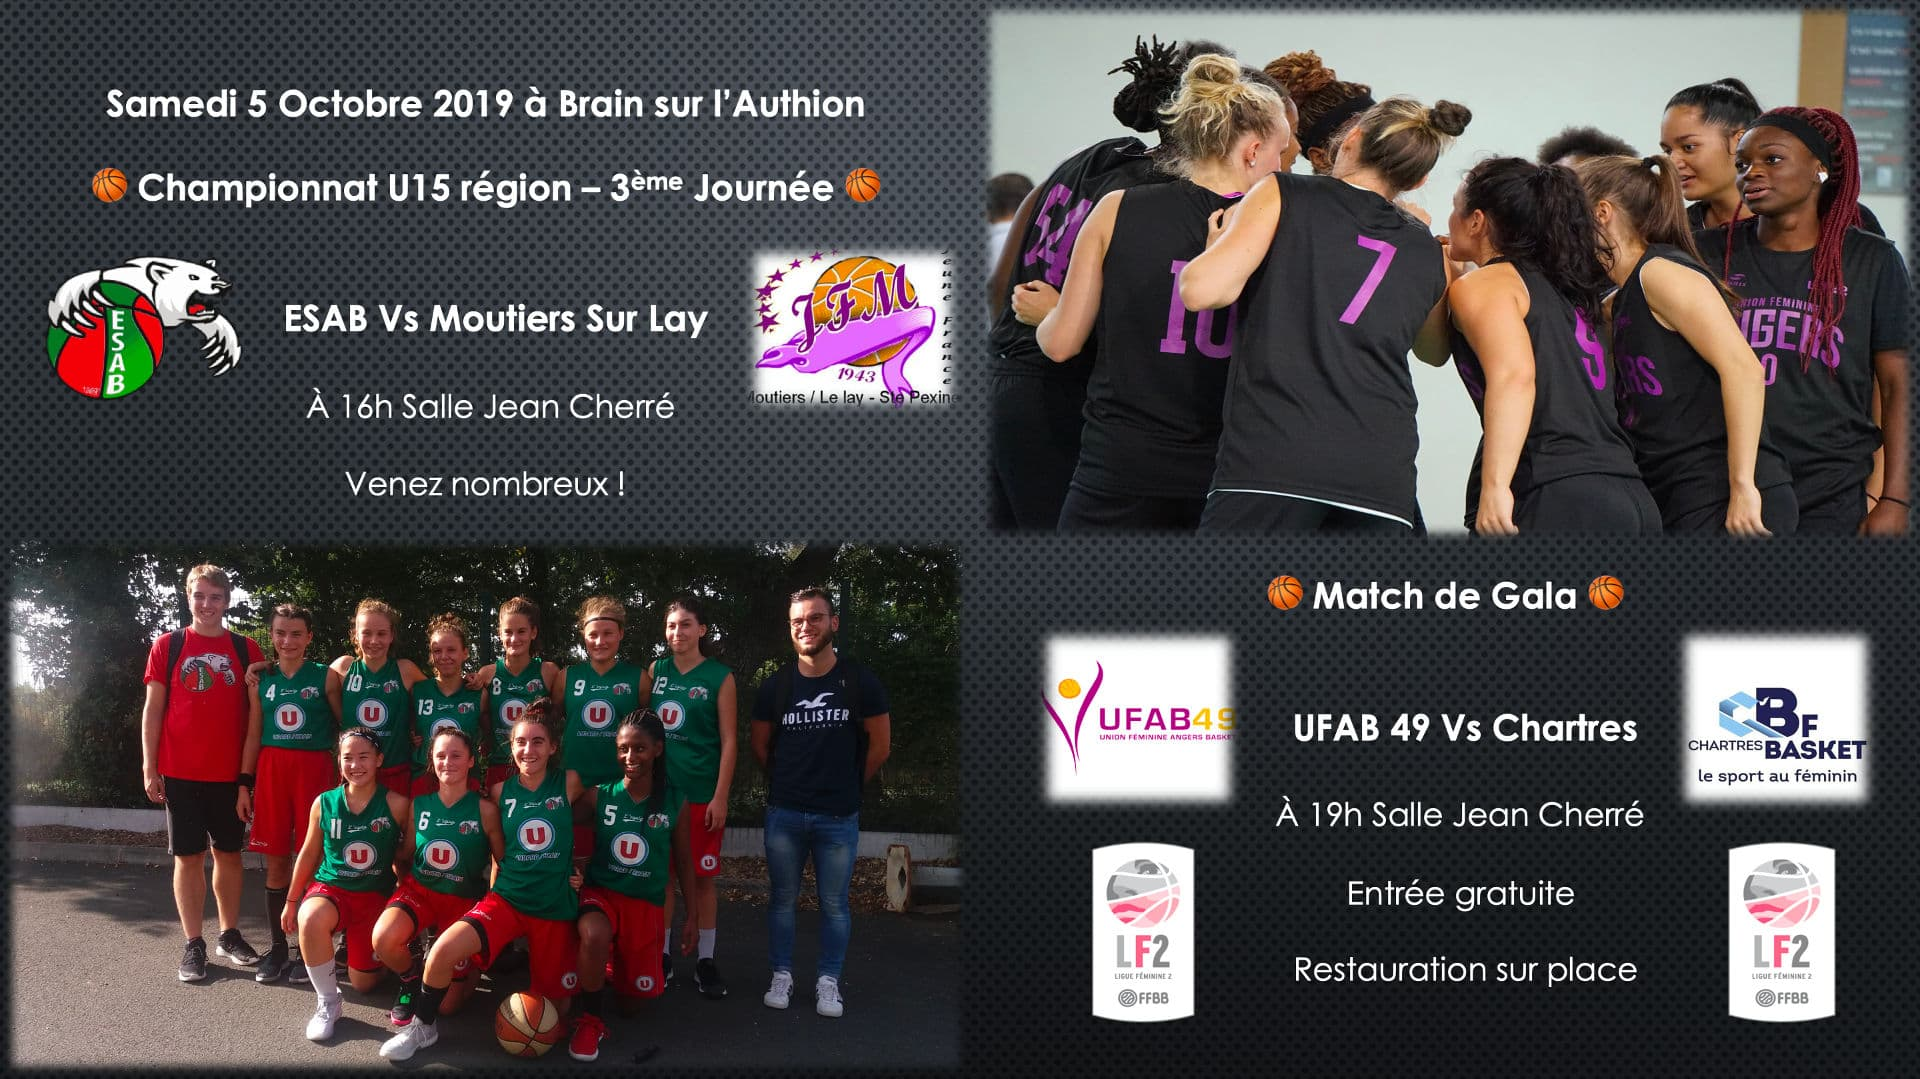 UFAB49 vs Chartres à Brain sur l'Authion, le Samedi 5 octobre 2019